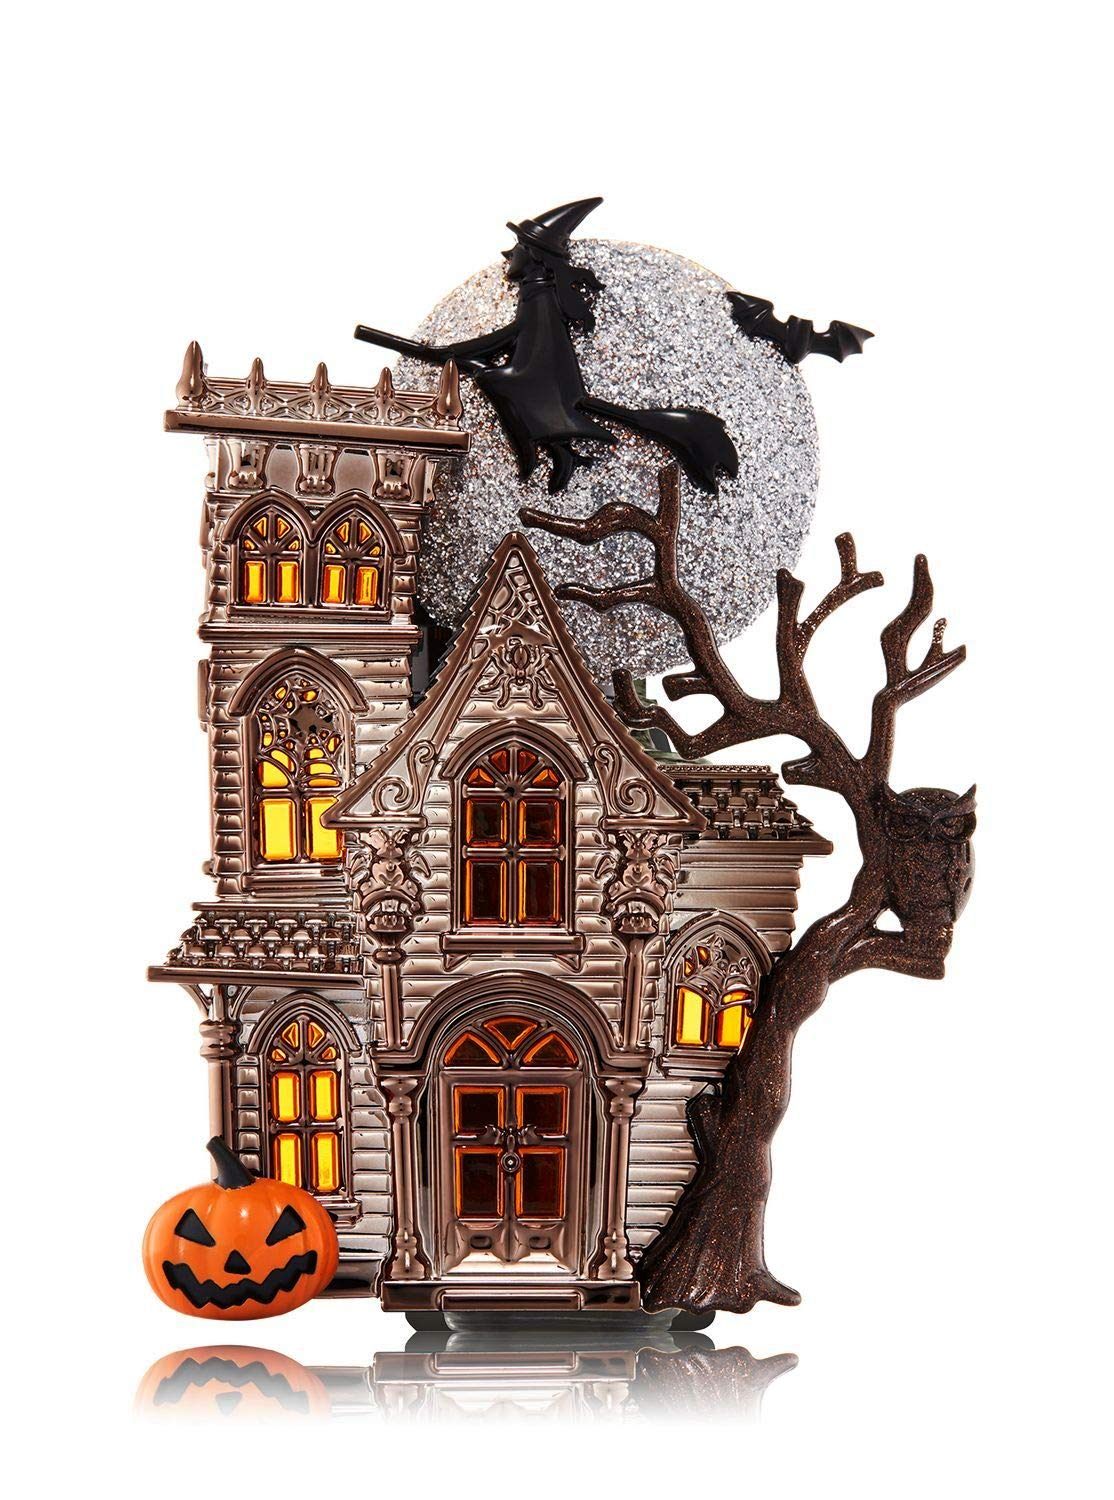 Bath and Body Works Halloween Haunted House WallFlower Fragrance Plug Nightlight - with Flying Witch, Bat, and Jack O'Lantern Pumpkin - Large Haunted House Halloween Night Light Outlet Diffuser